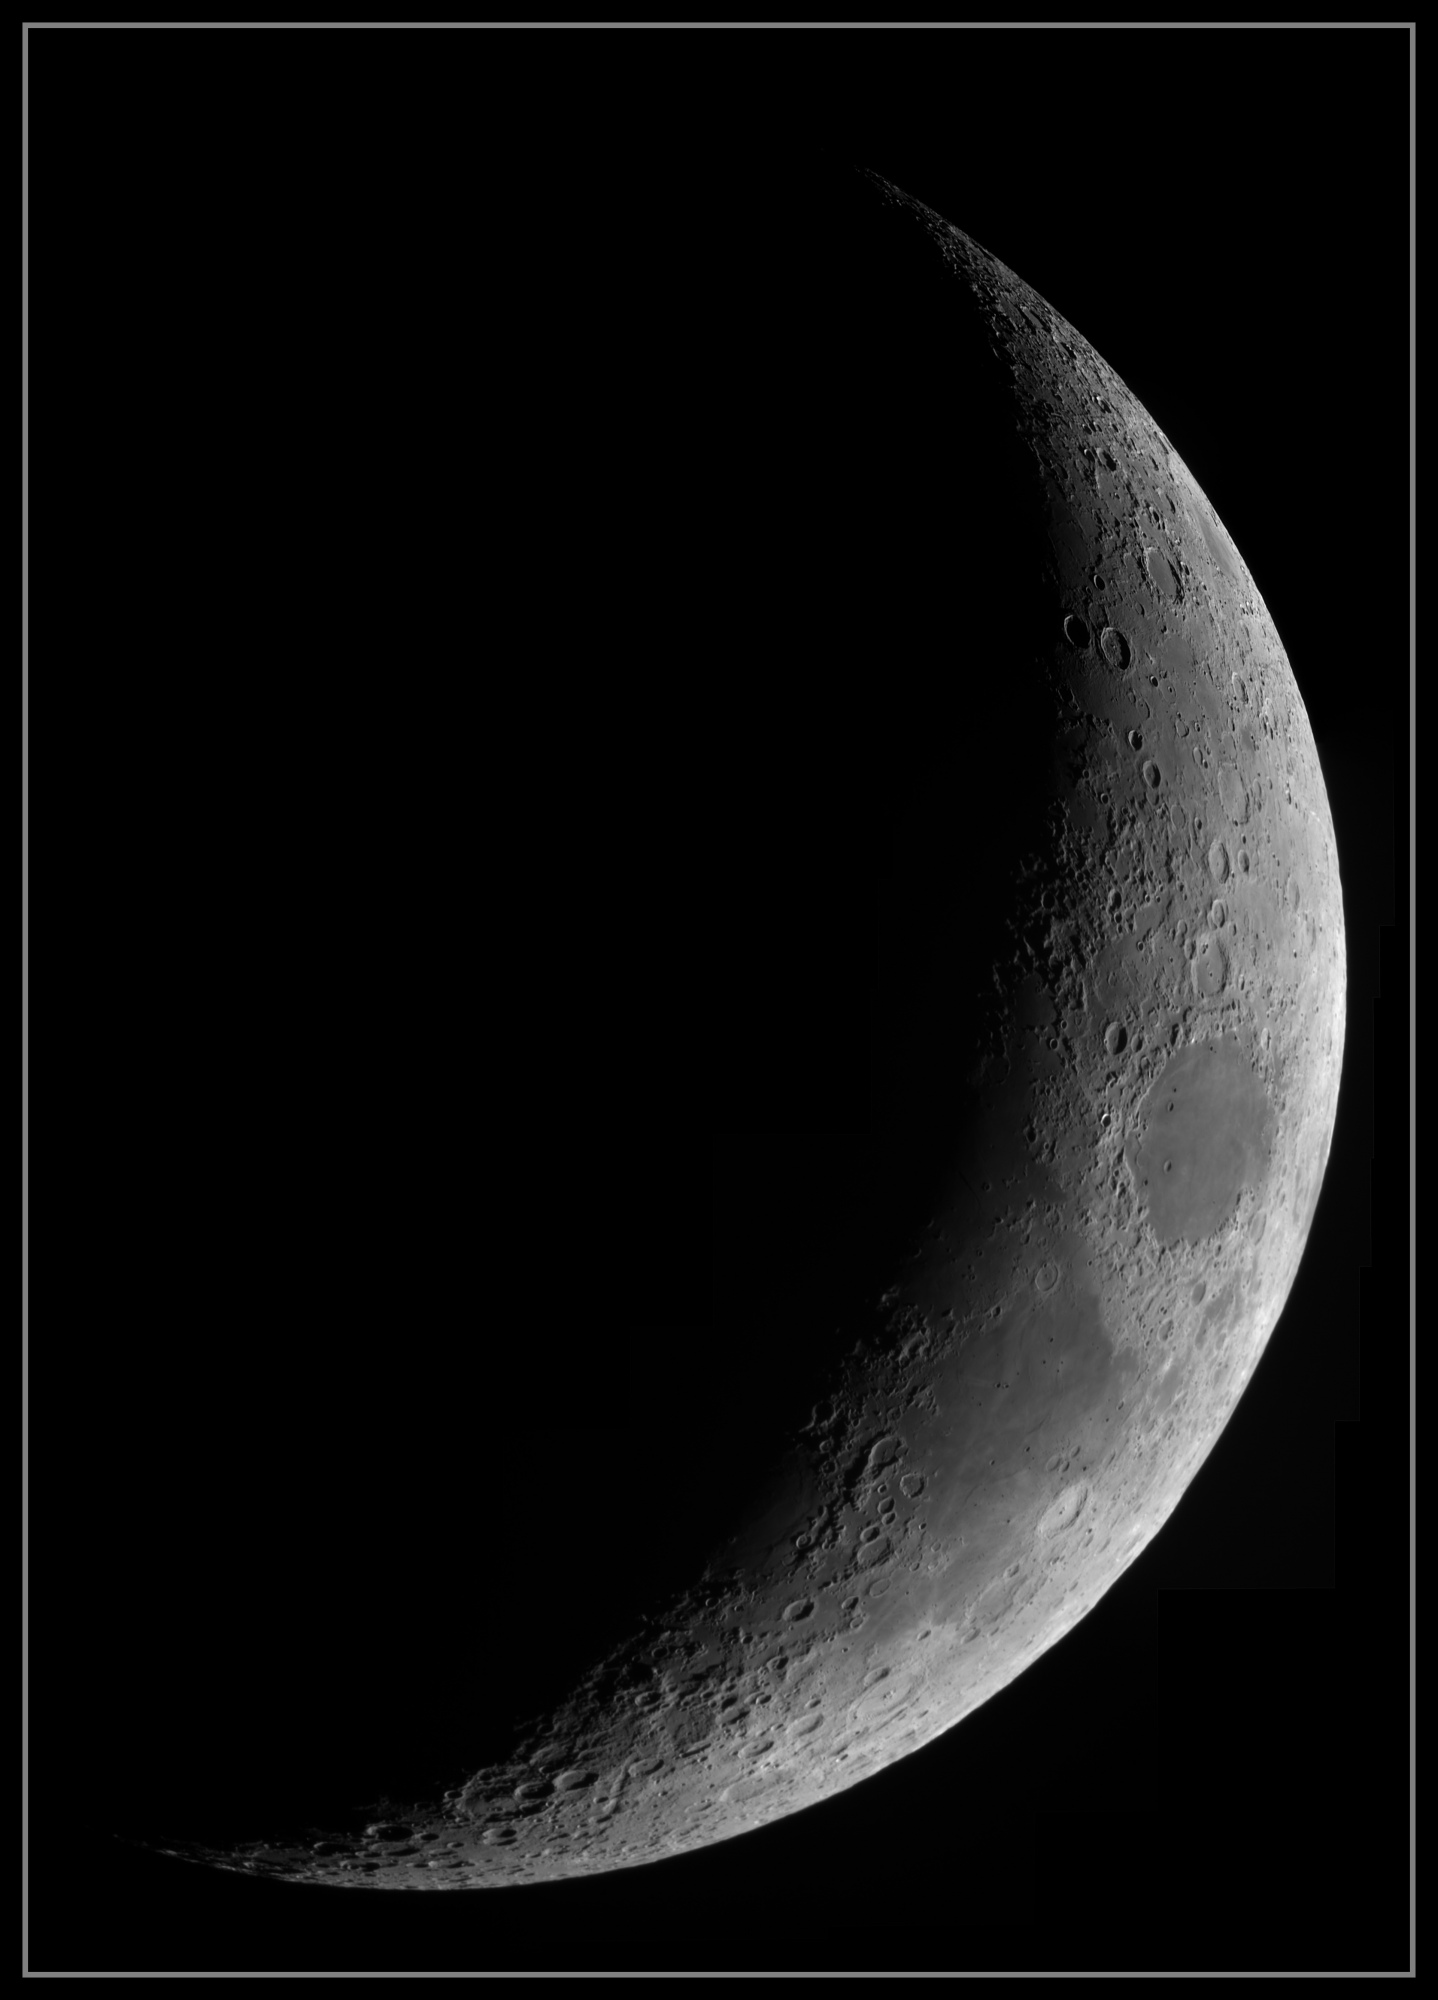 5e346cc3aee0d_Moon_184844_290120_ZWOASI290MM_IR_742nm_AS_P25_lapl5_ap56_stitch.thumb.jpg.ee473d8aba0d13145545ffb079fc7c5e.jpg